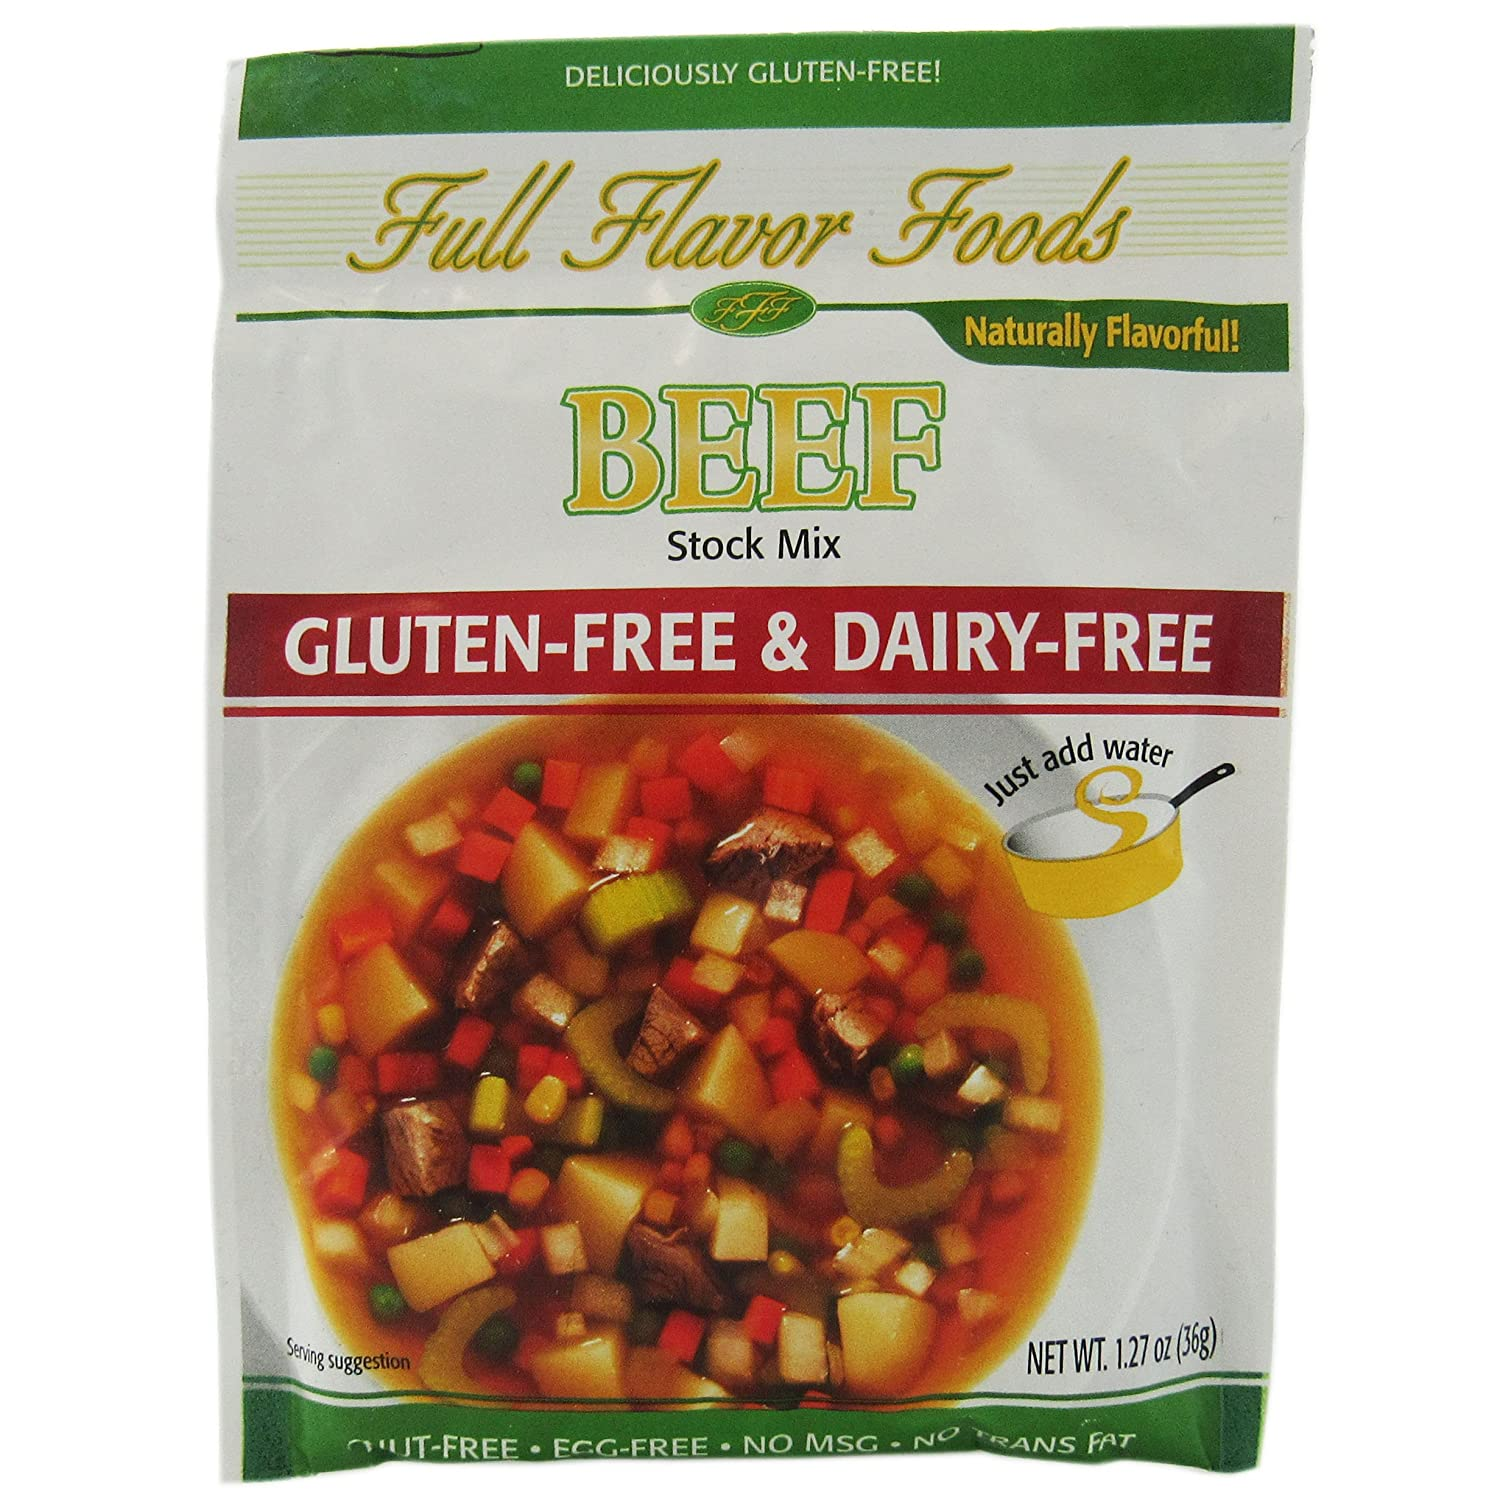 Full Flavor Foods - Gluten Free Creamy Mushroom Soup & Sauce Mix (2.65 oz Packets) - Pack of 10: Amazon.com: Grocery & Gourmet Food